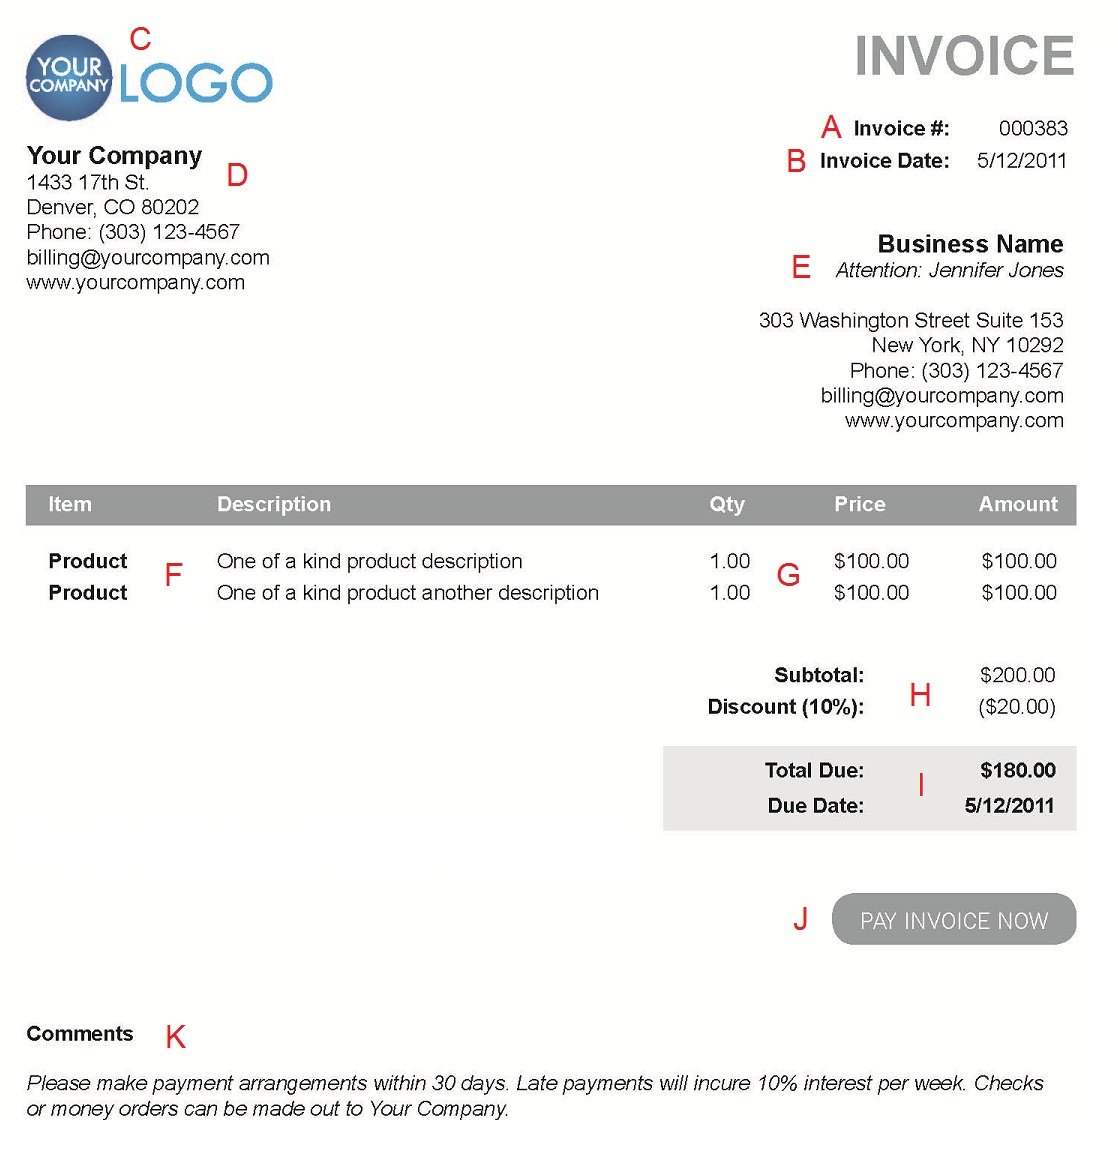 Helpingtohealus  Marvelous The  Different Sections Of An Electronic Payment Invoice With Gorgeous A  With Comely Lic Policy Receipt Online Also Receipt Formats In Addition Private Sale Receipt Template And Create A Receipt Template As Well As Receipt Template Open Office Additionally Received Payment Receipt Format From Paysimplecom With Helpingtohealus  Gorgeous The  Different Sections Of An Electronic Payment Invoice With Comely A  And Marvelous Lic Policy Receipt Online Also Receipt Formats In Addition Private Sale Receipt Template From Paysimplecom